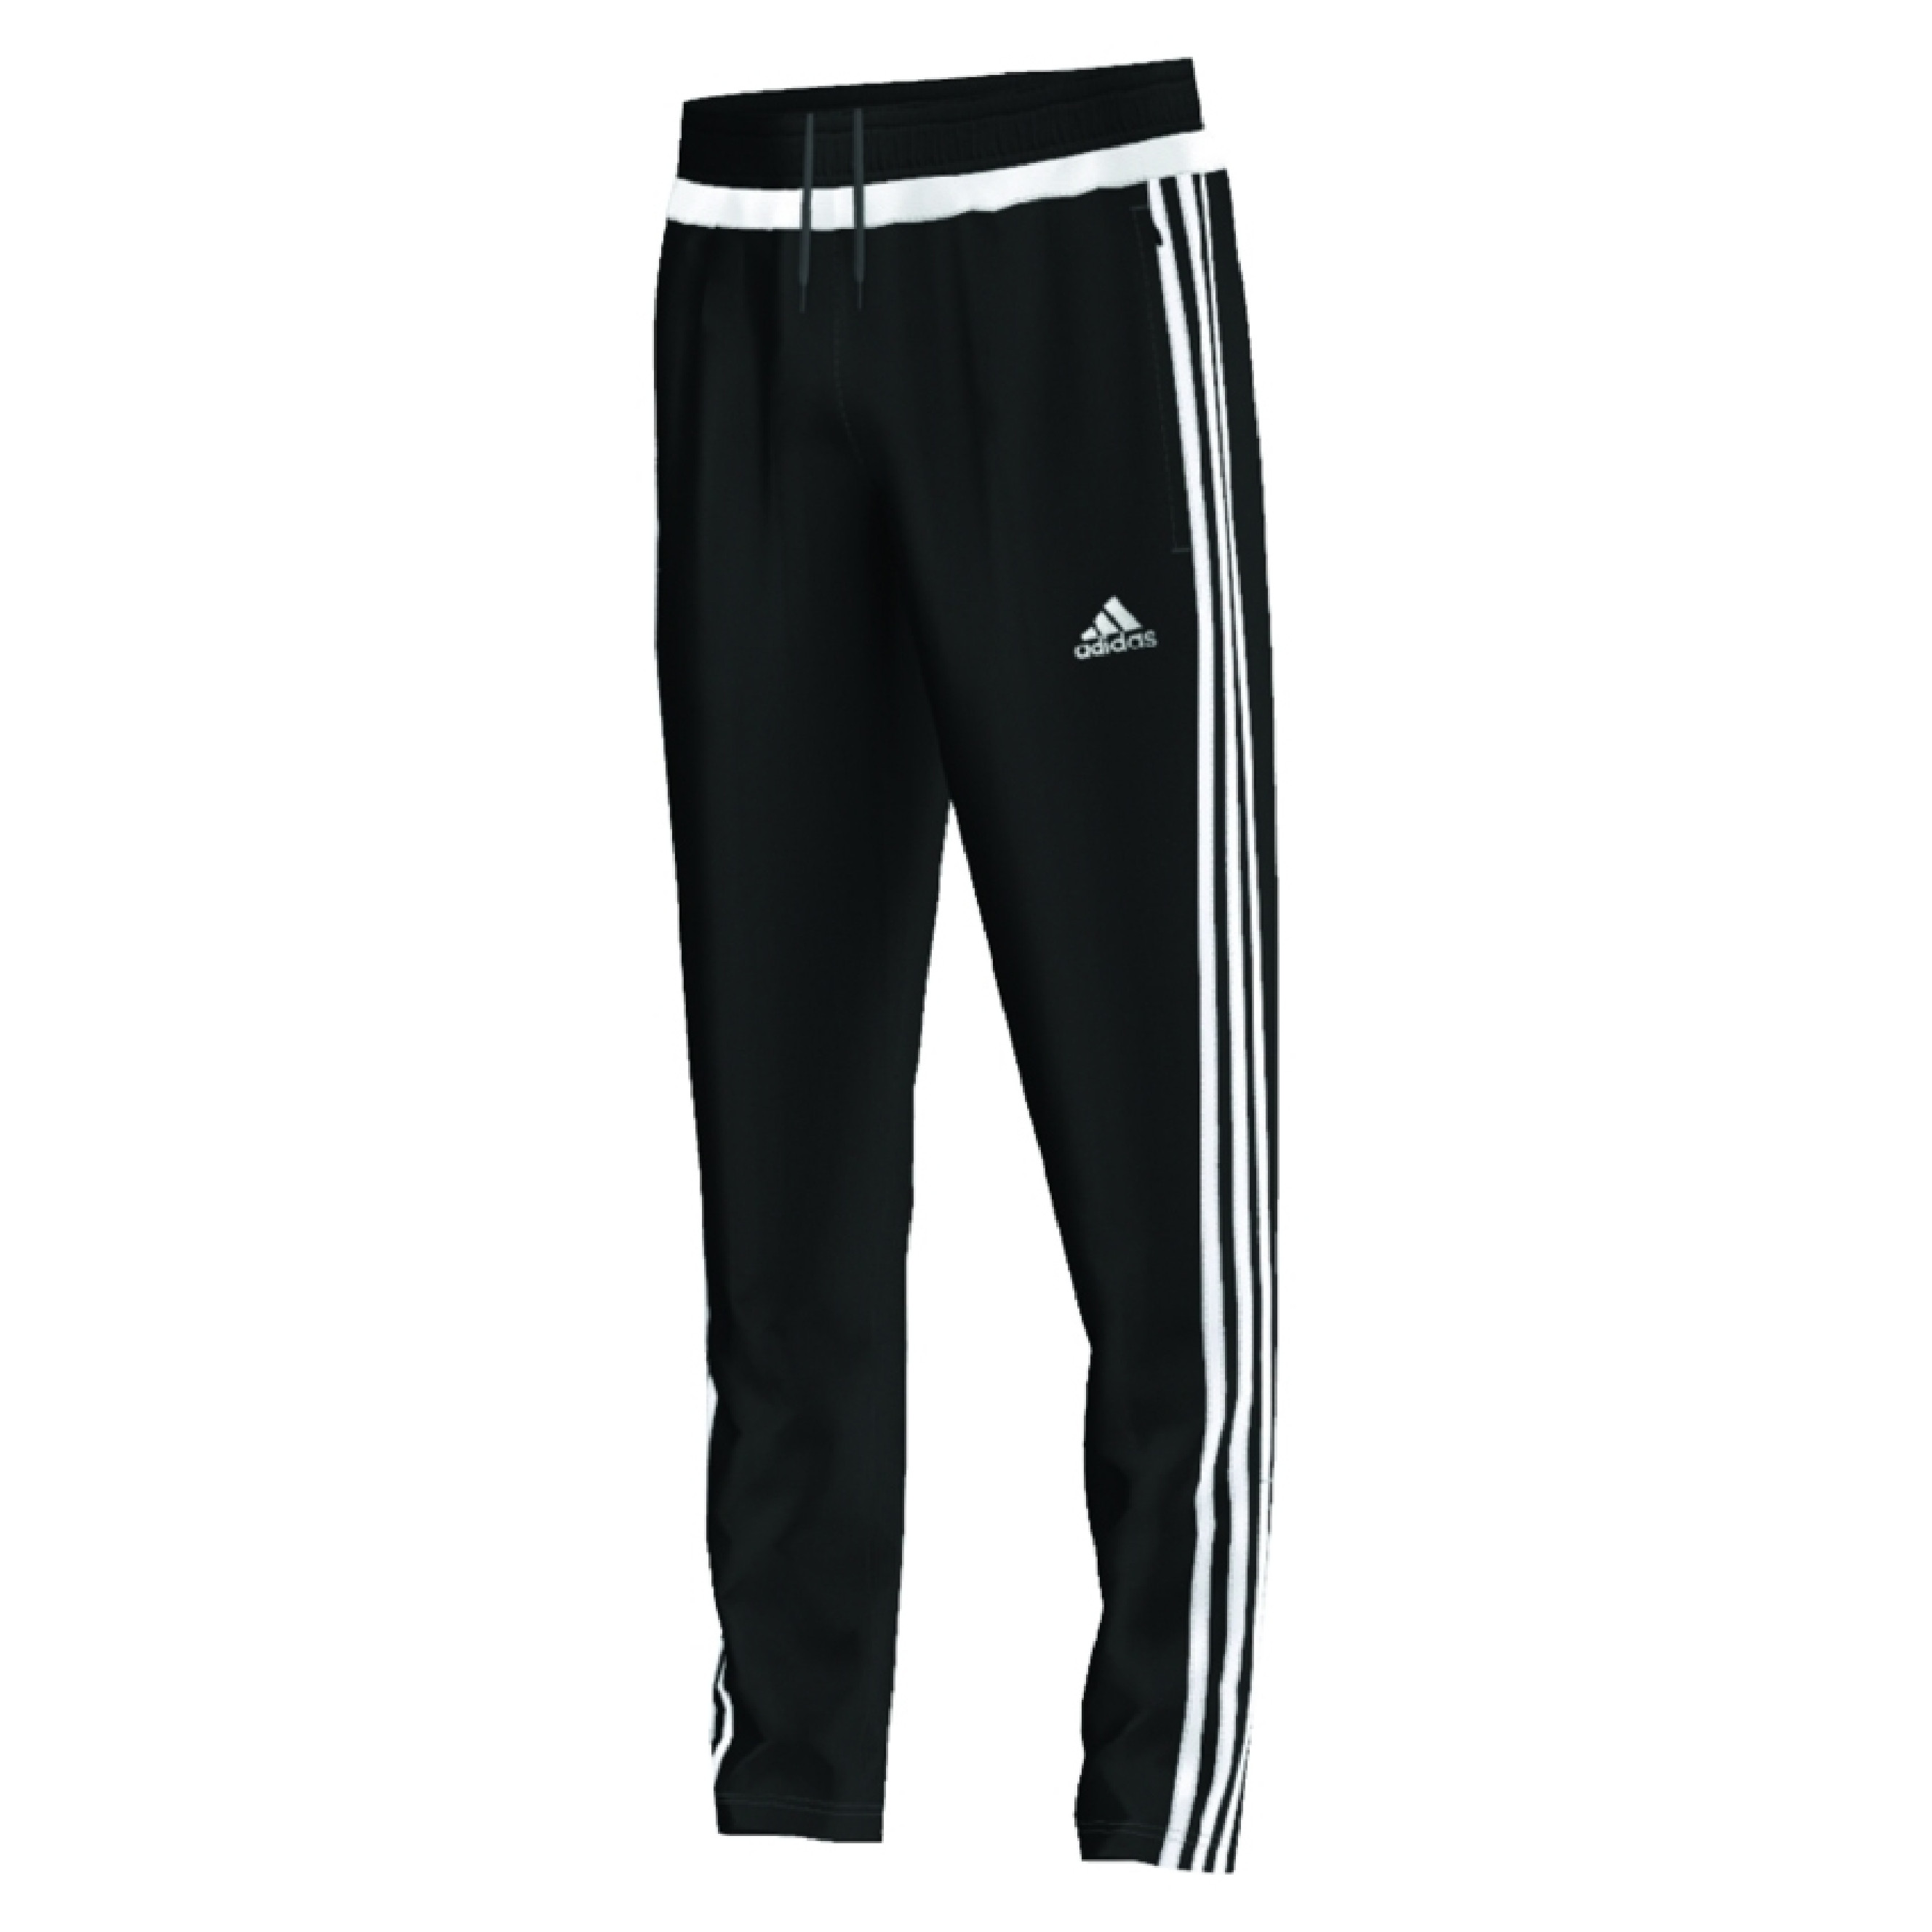 North Royalton Adidas Tiro 15 Training Pant